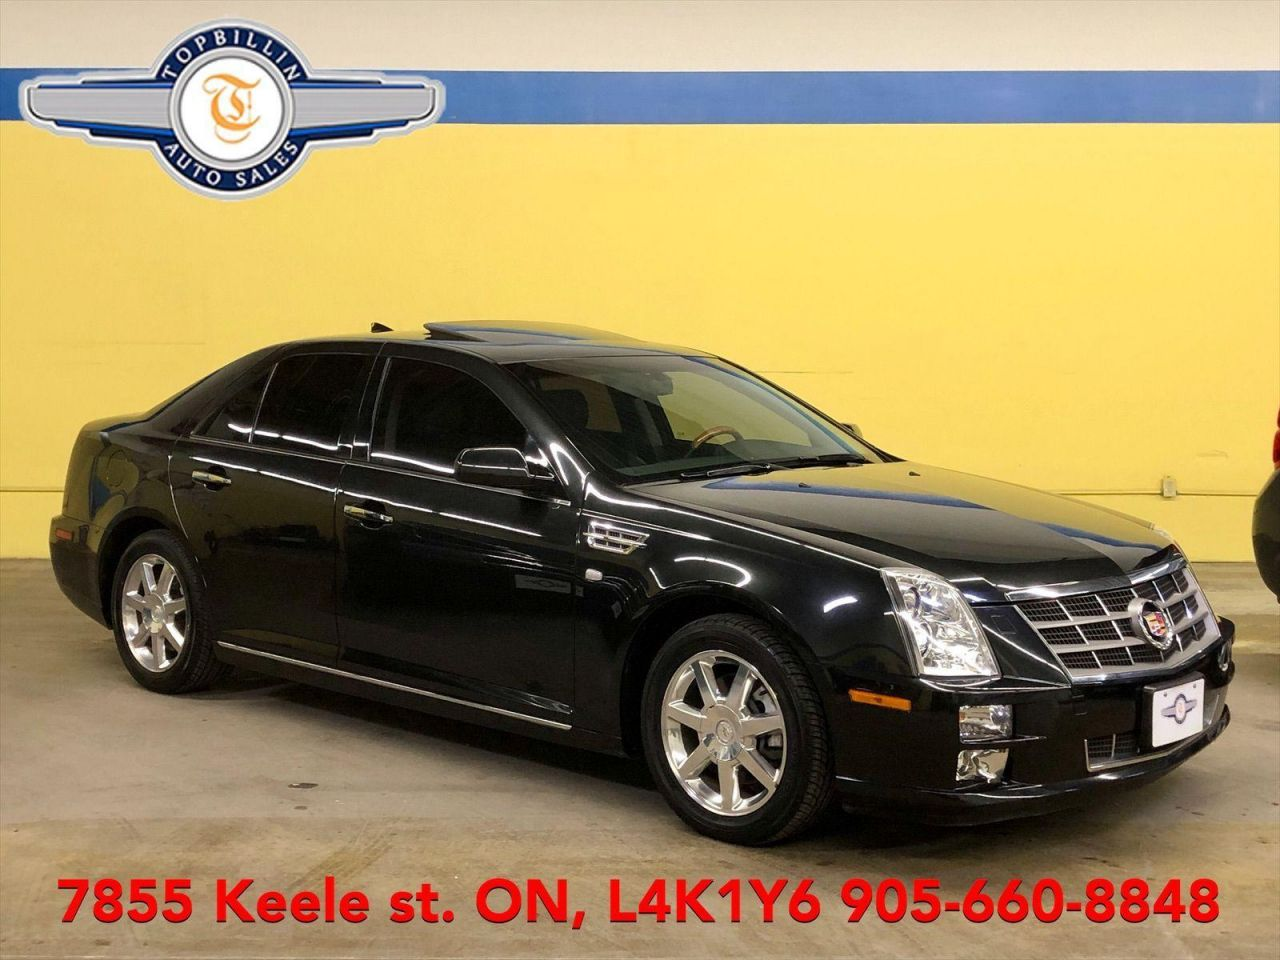 2011 Cadillac STS Luxury, AWD, Only 72,000 Km, Extra Clean